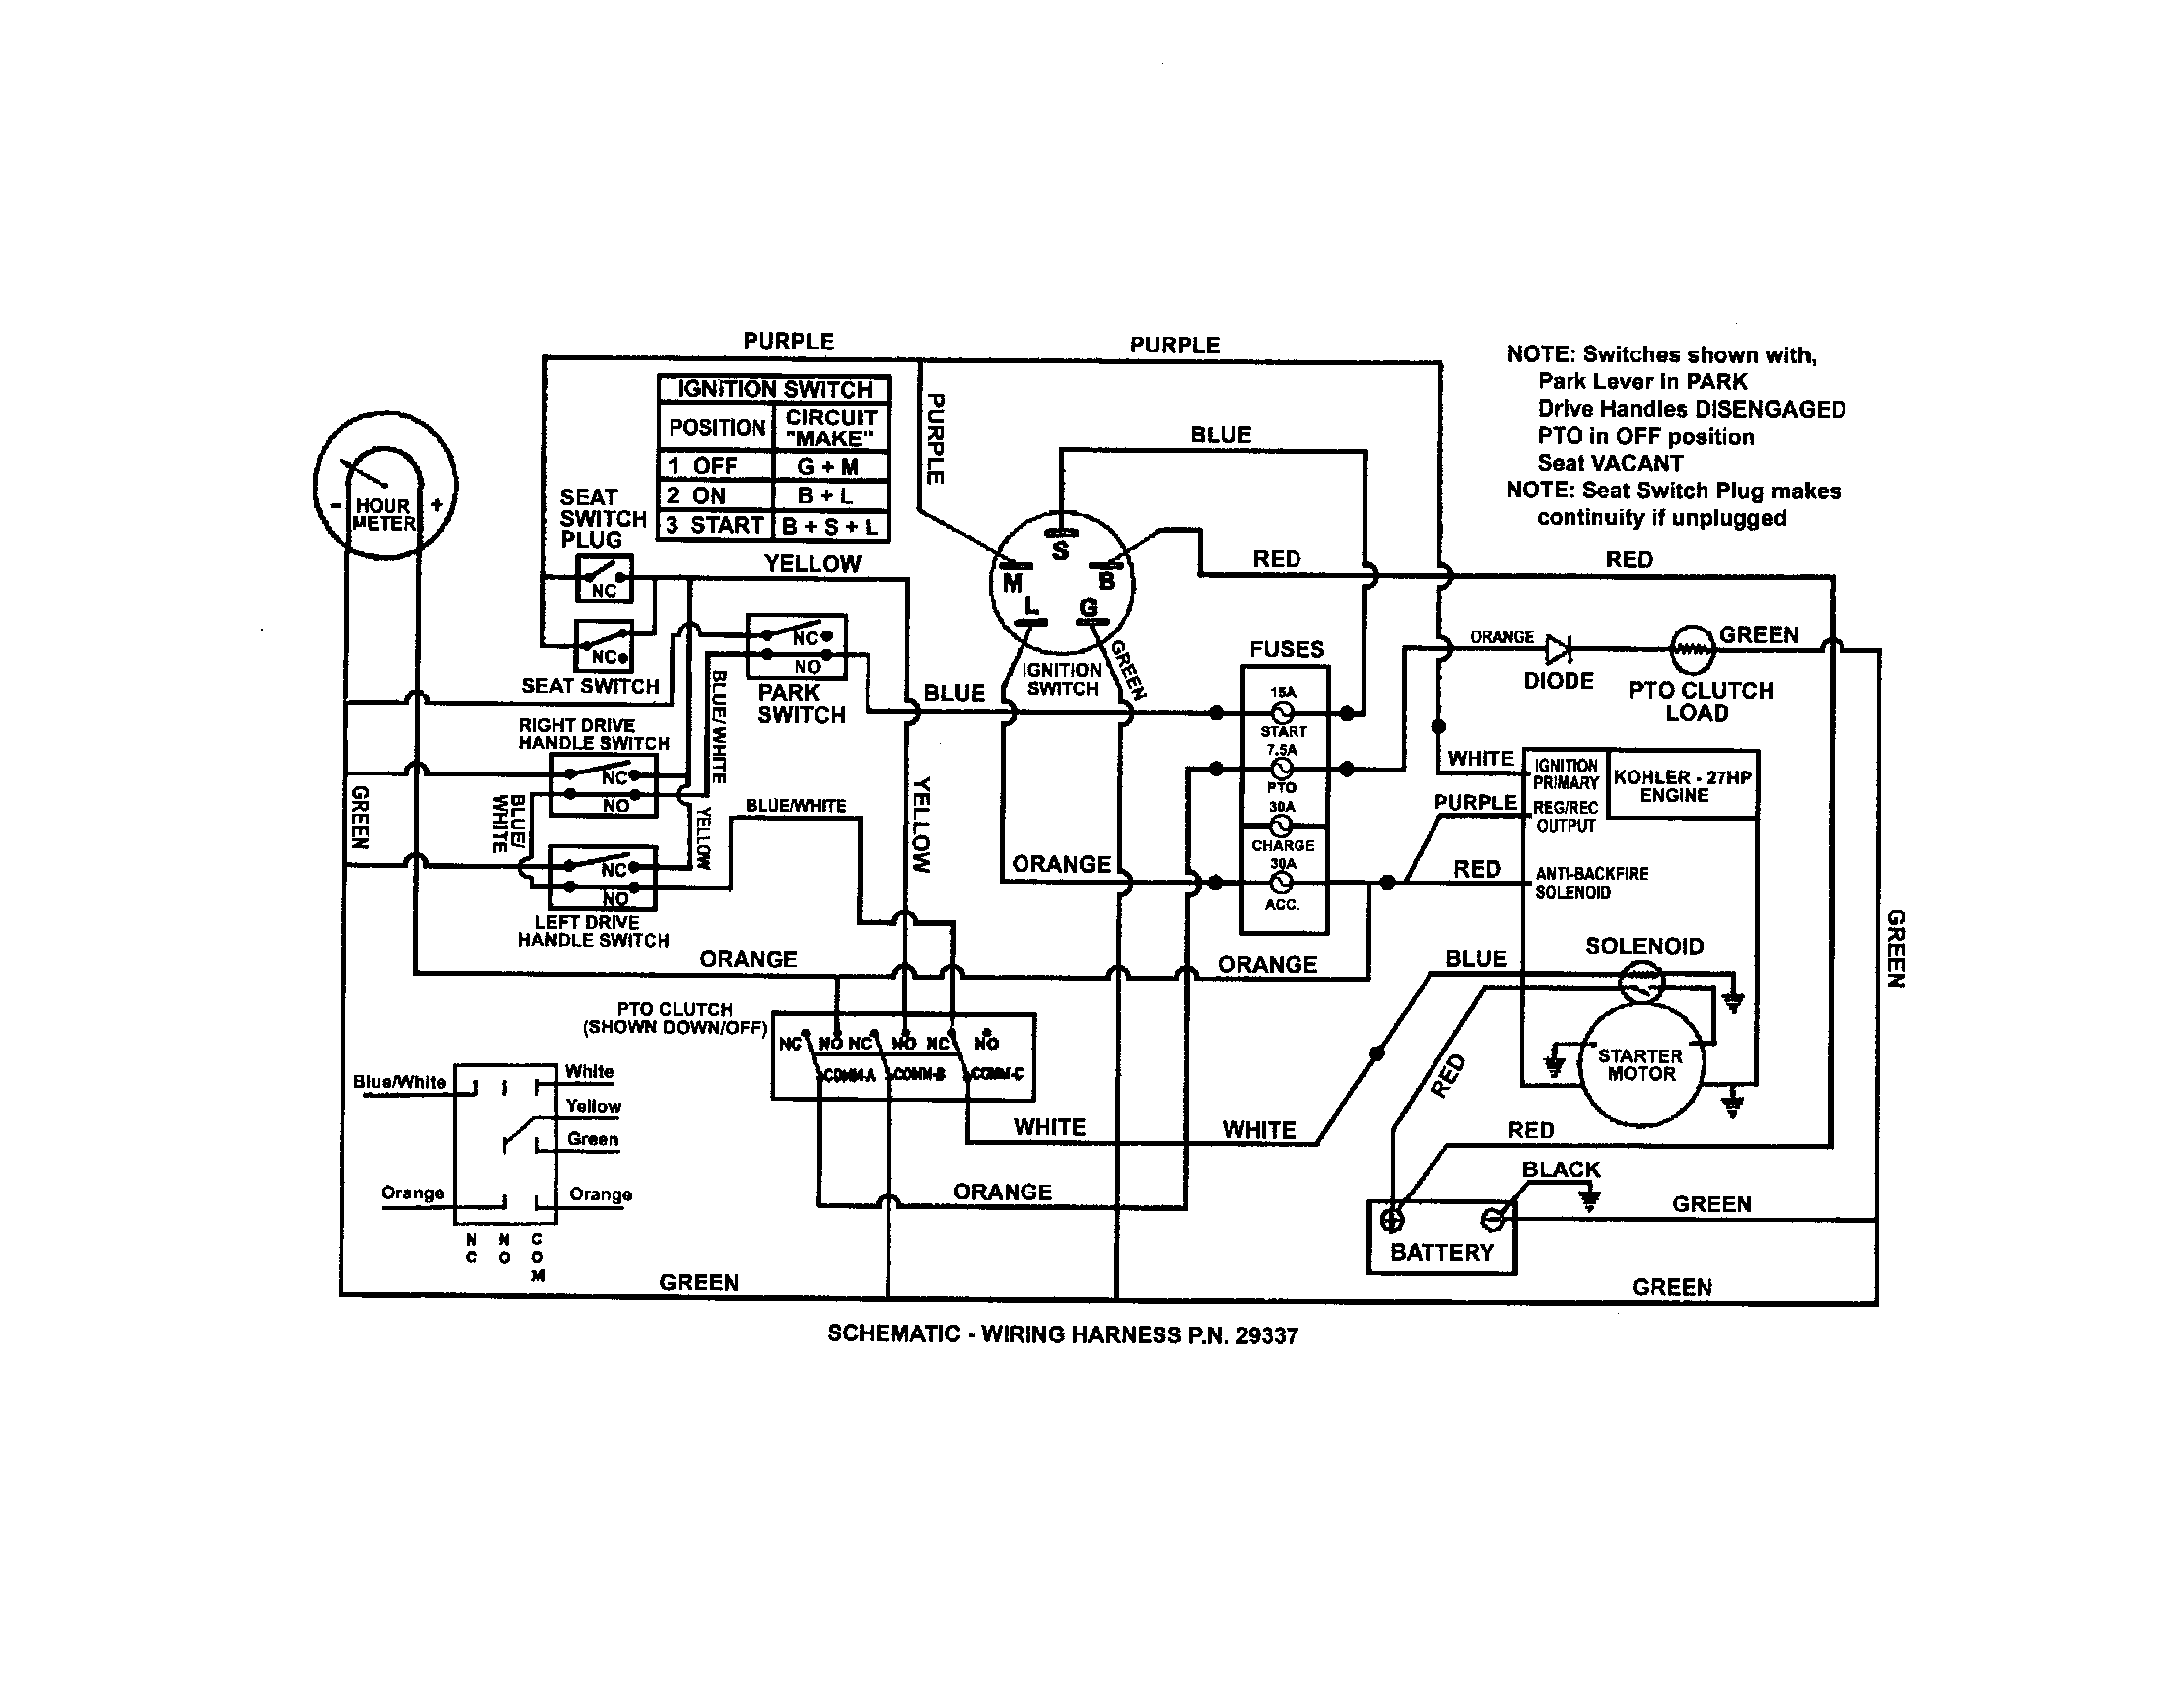 WIRING SCHEMATIC (KOHLER ENGINE) Diagram & Parts List For